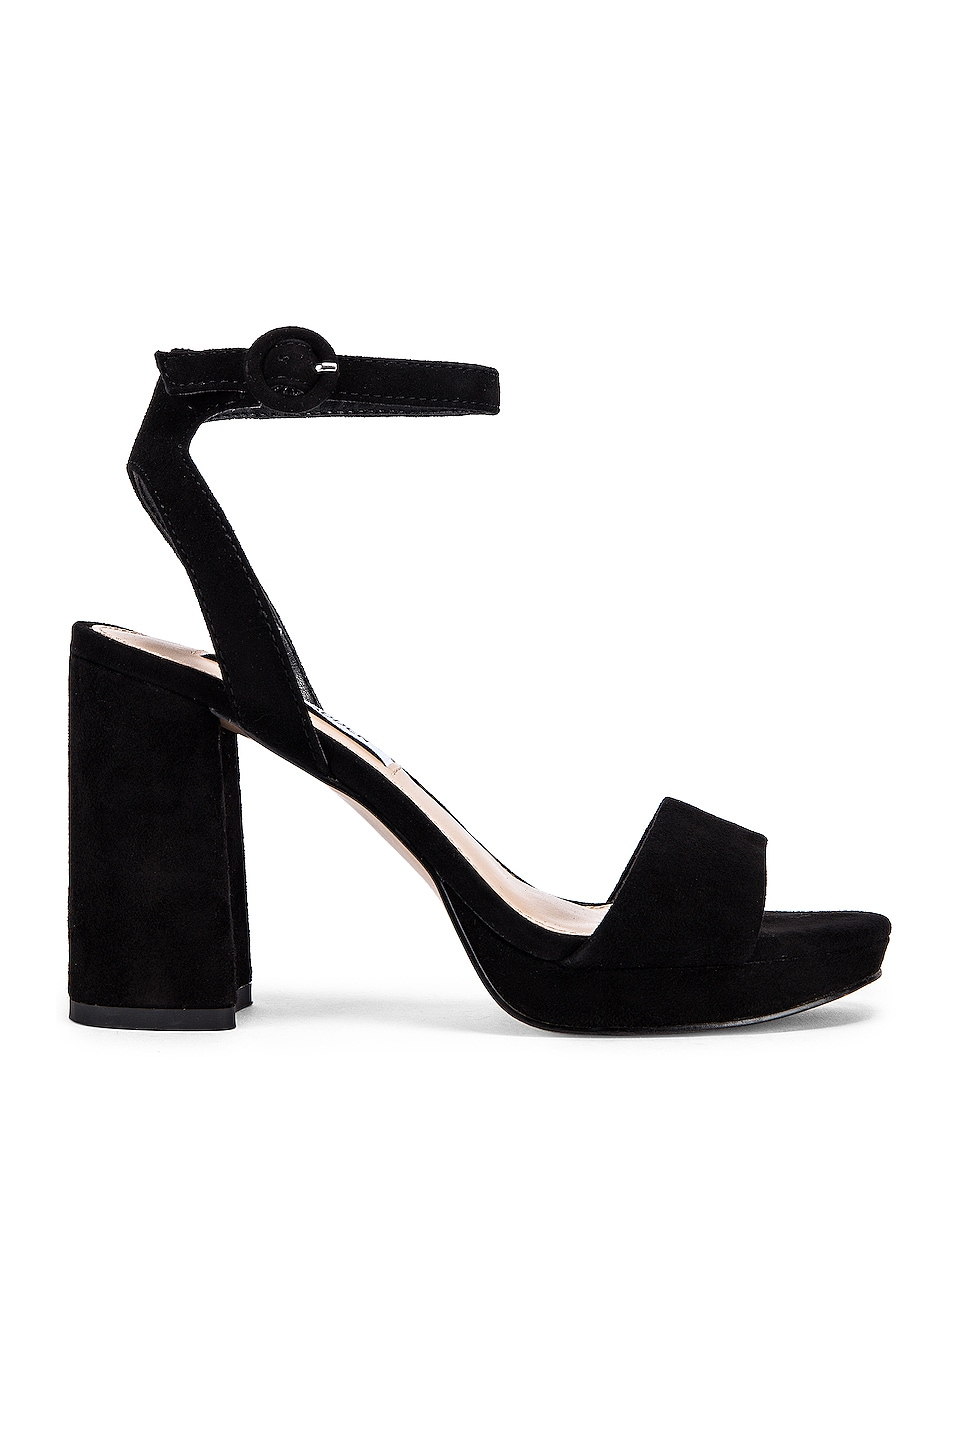 Steve Madden Perch Sandal in Black